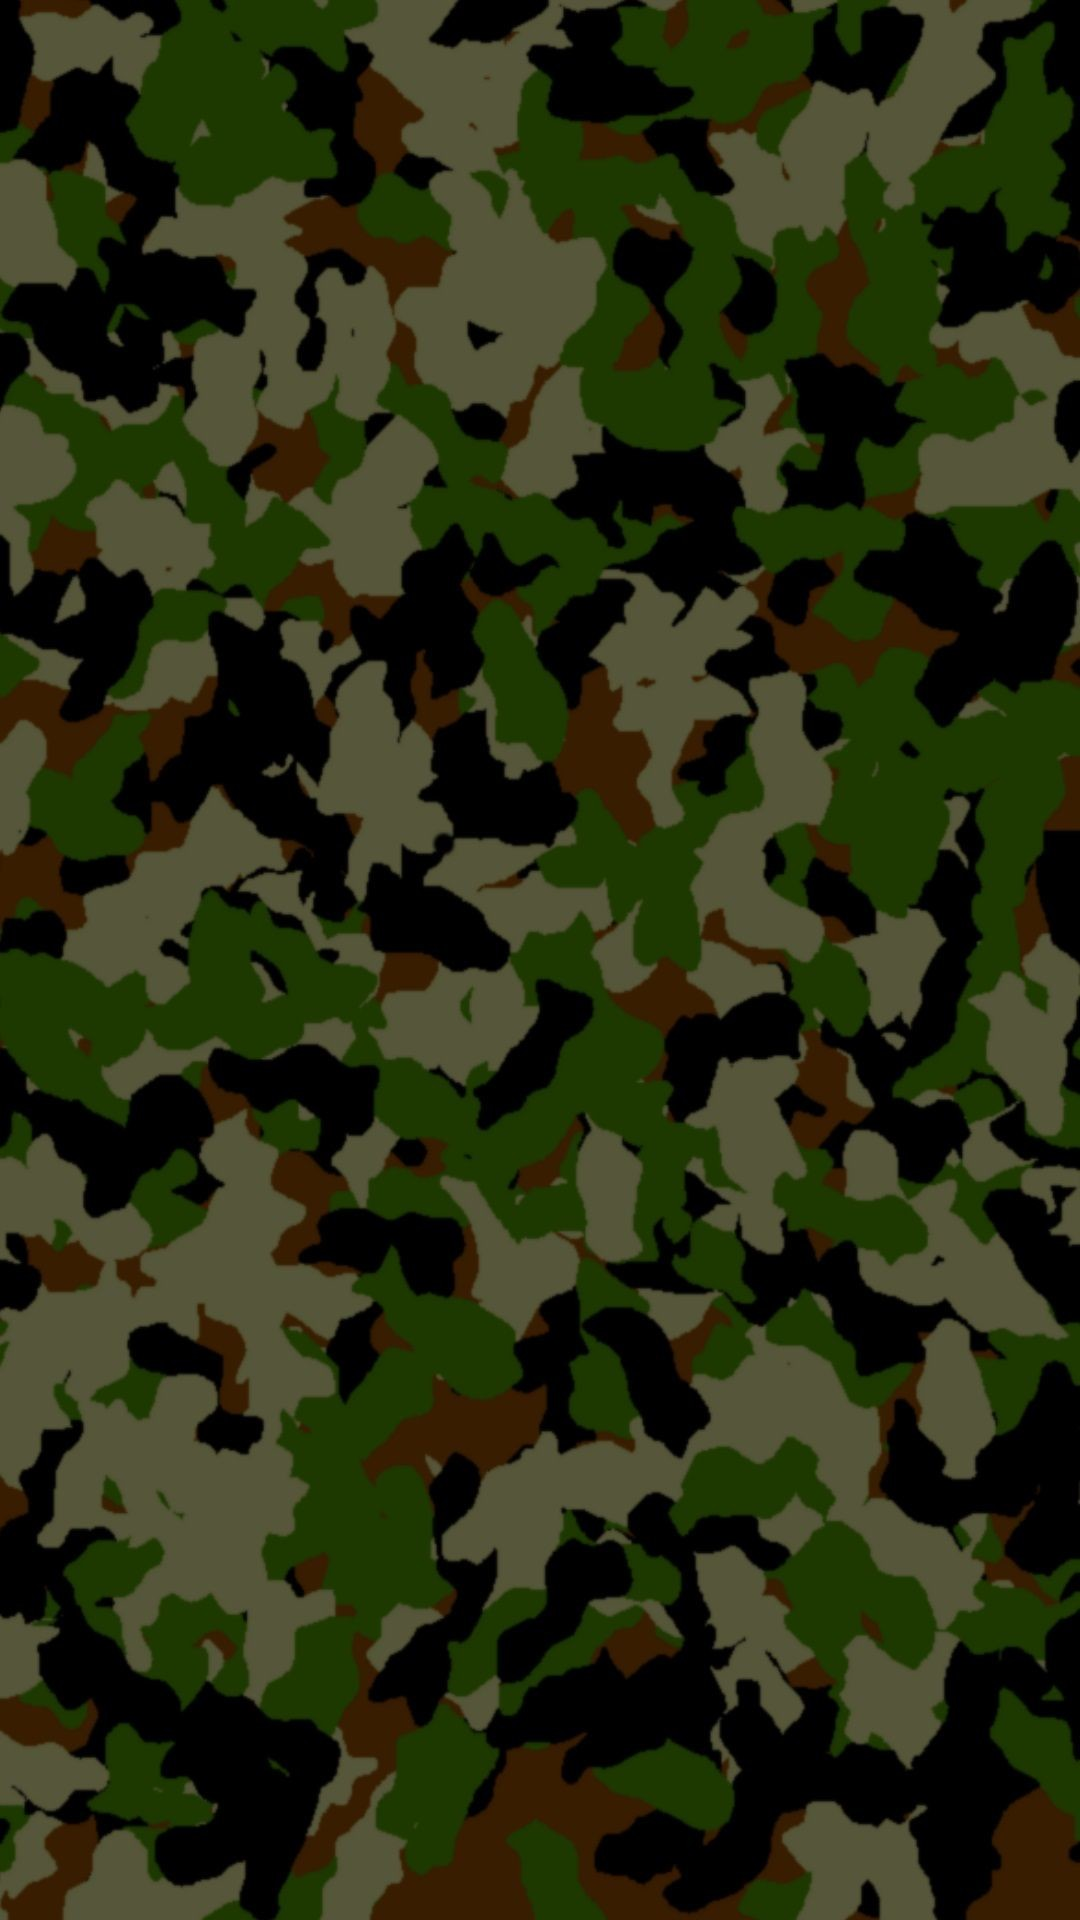 1080x1920, Camouflage Wallpaper For Iphone Or Android - Camo Print - HD Wallpaper